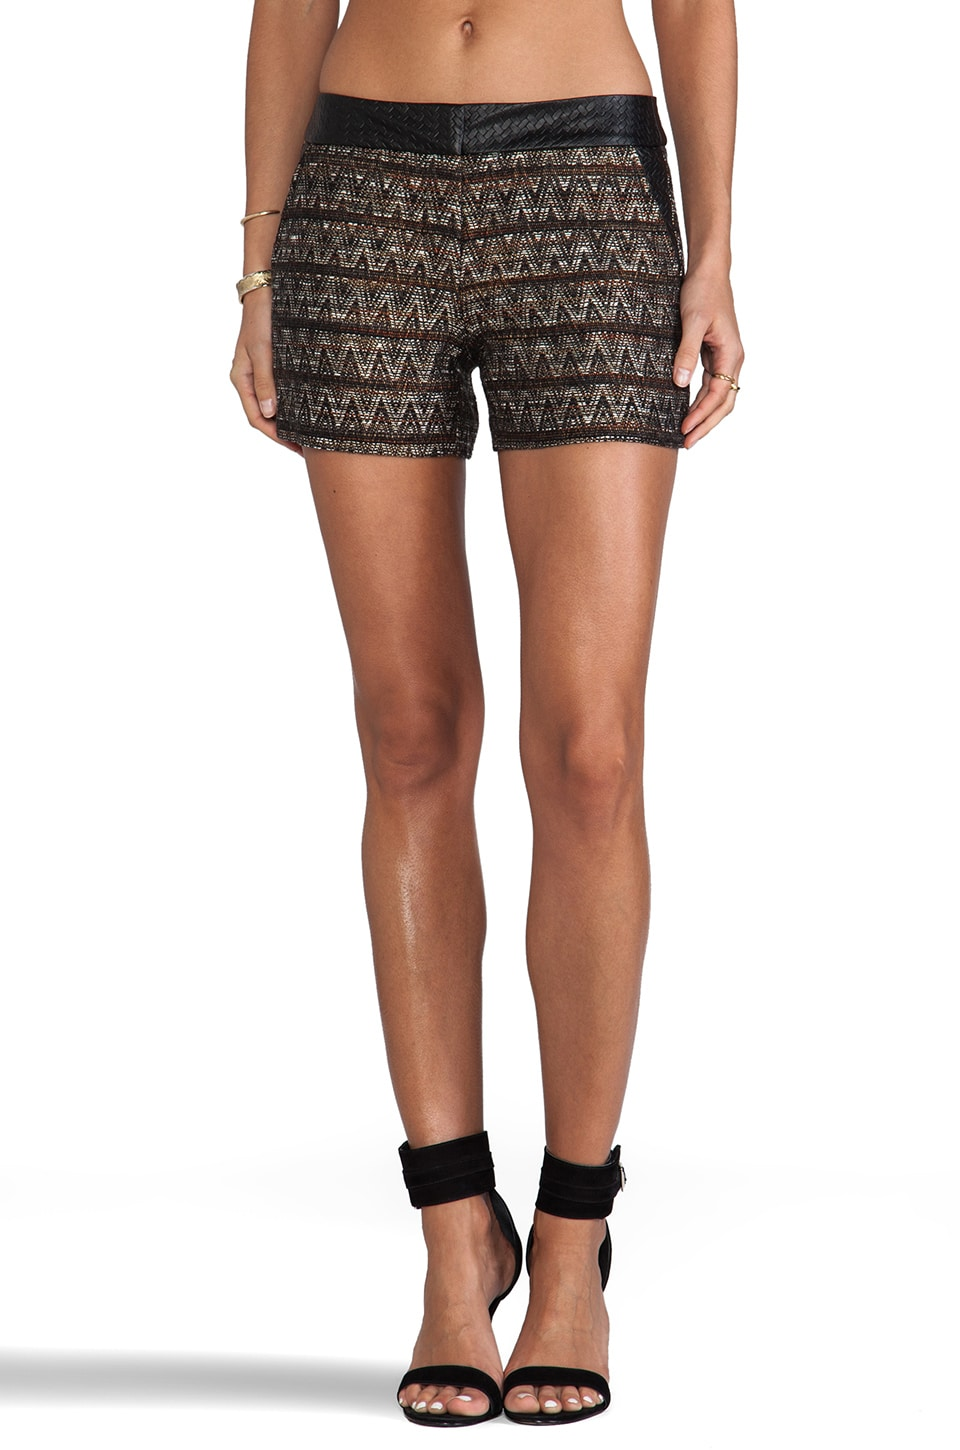 Trina Turk Borrego Tweed Gathering Short in Multi